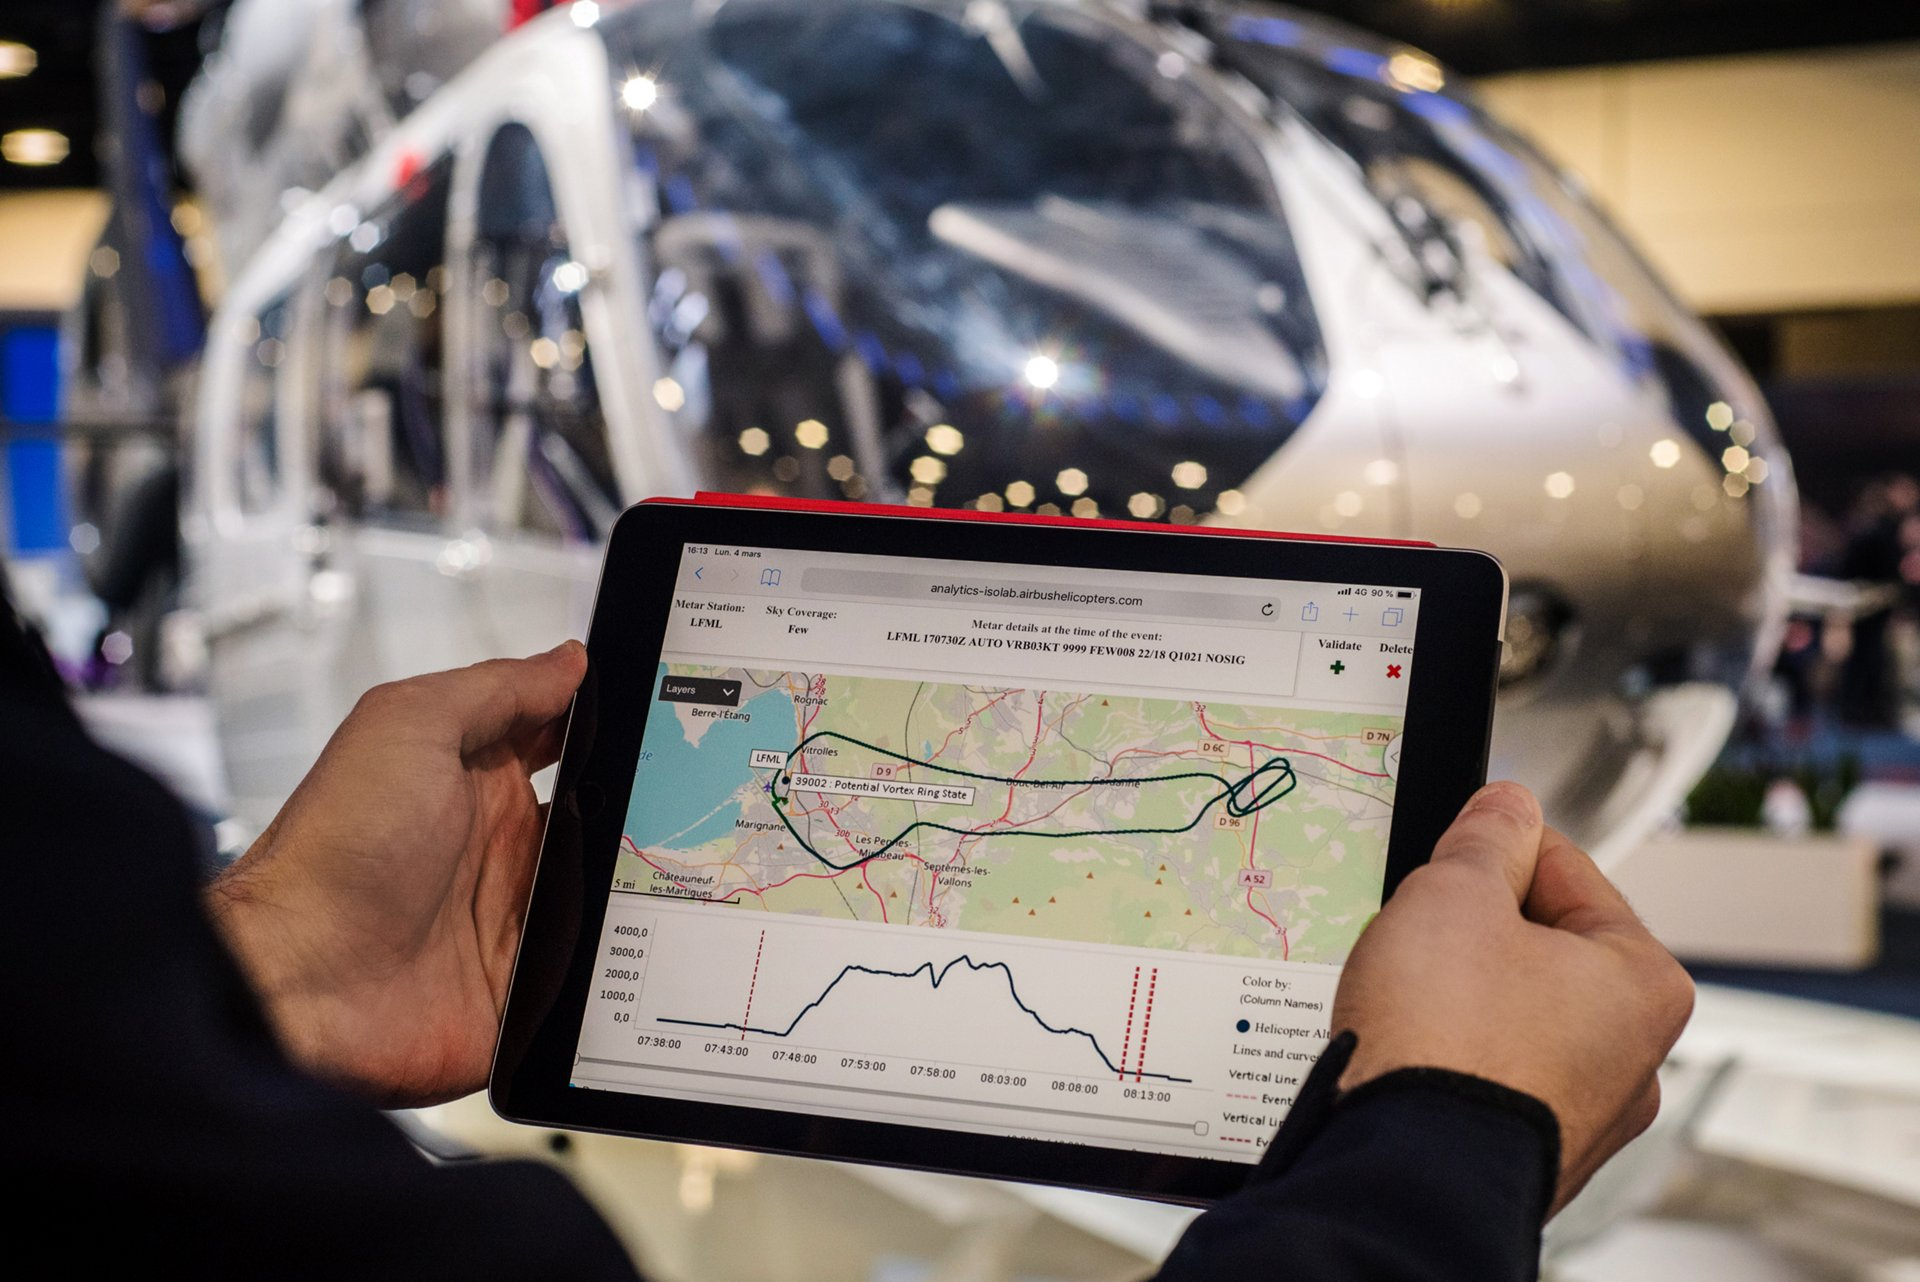 Airbus Helicopters offers a range of connected services solutions that help customers collect and make sense of their data.